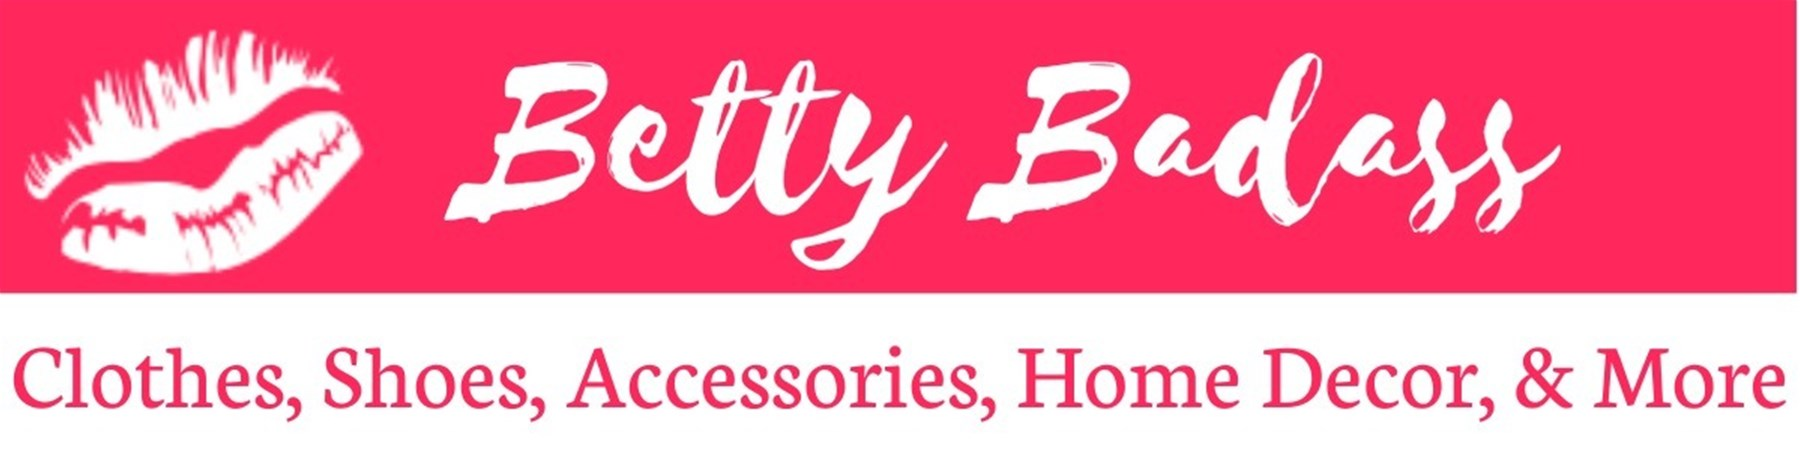 Betty Badass Clothes Banner